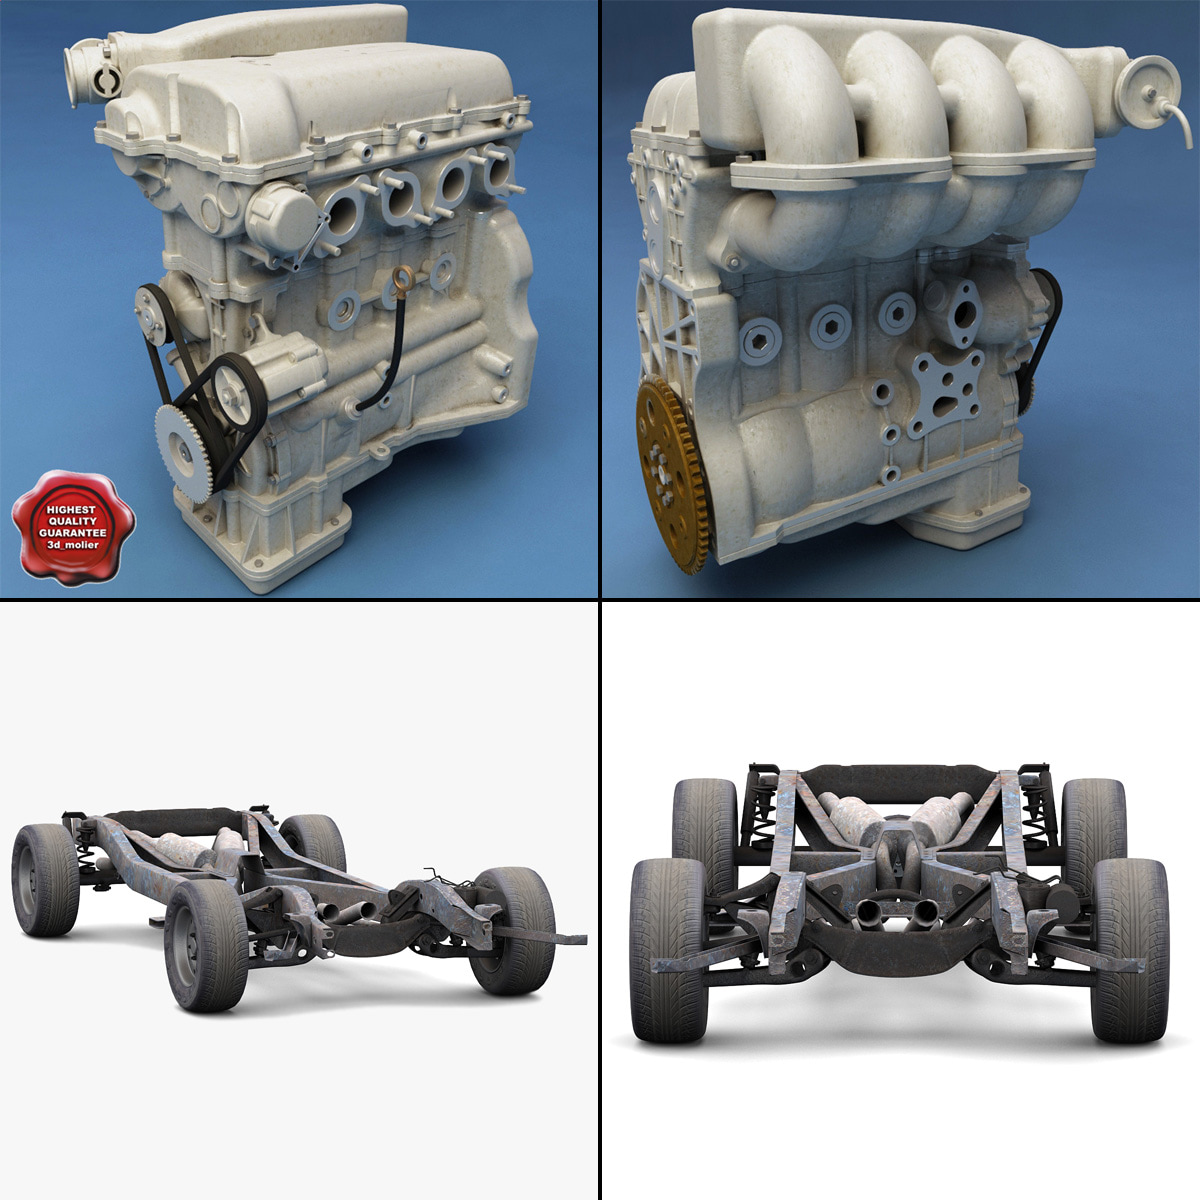 Car_Chassis_and_Engine_v2_000.jpg